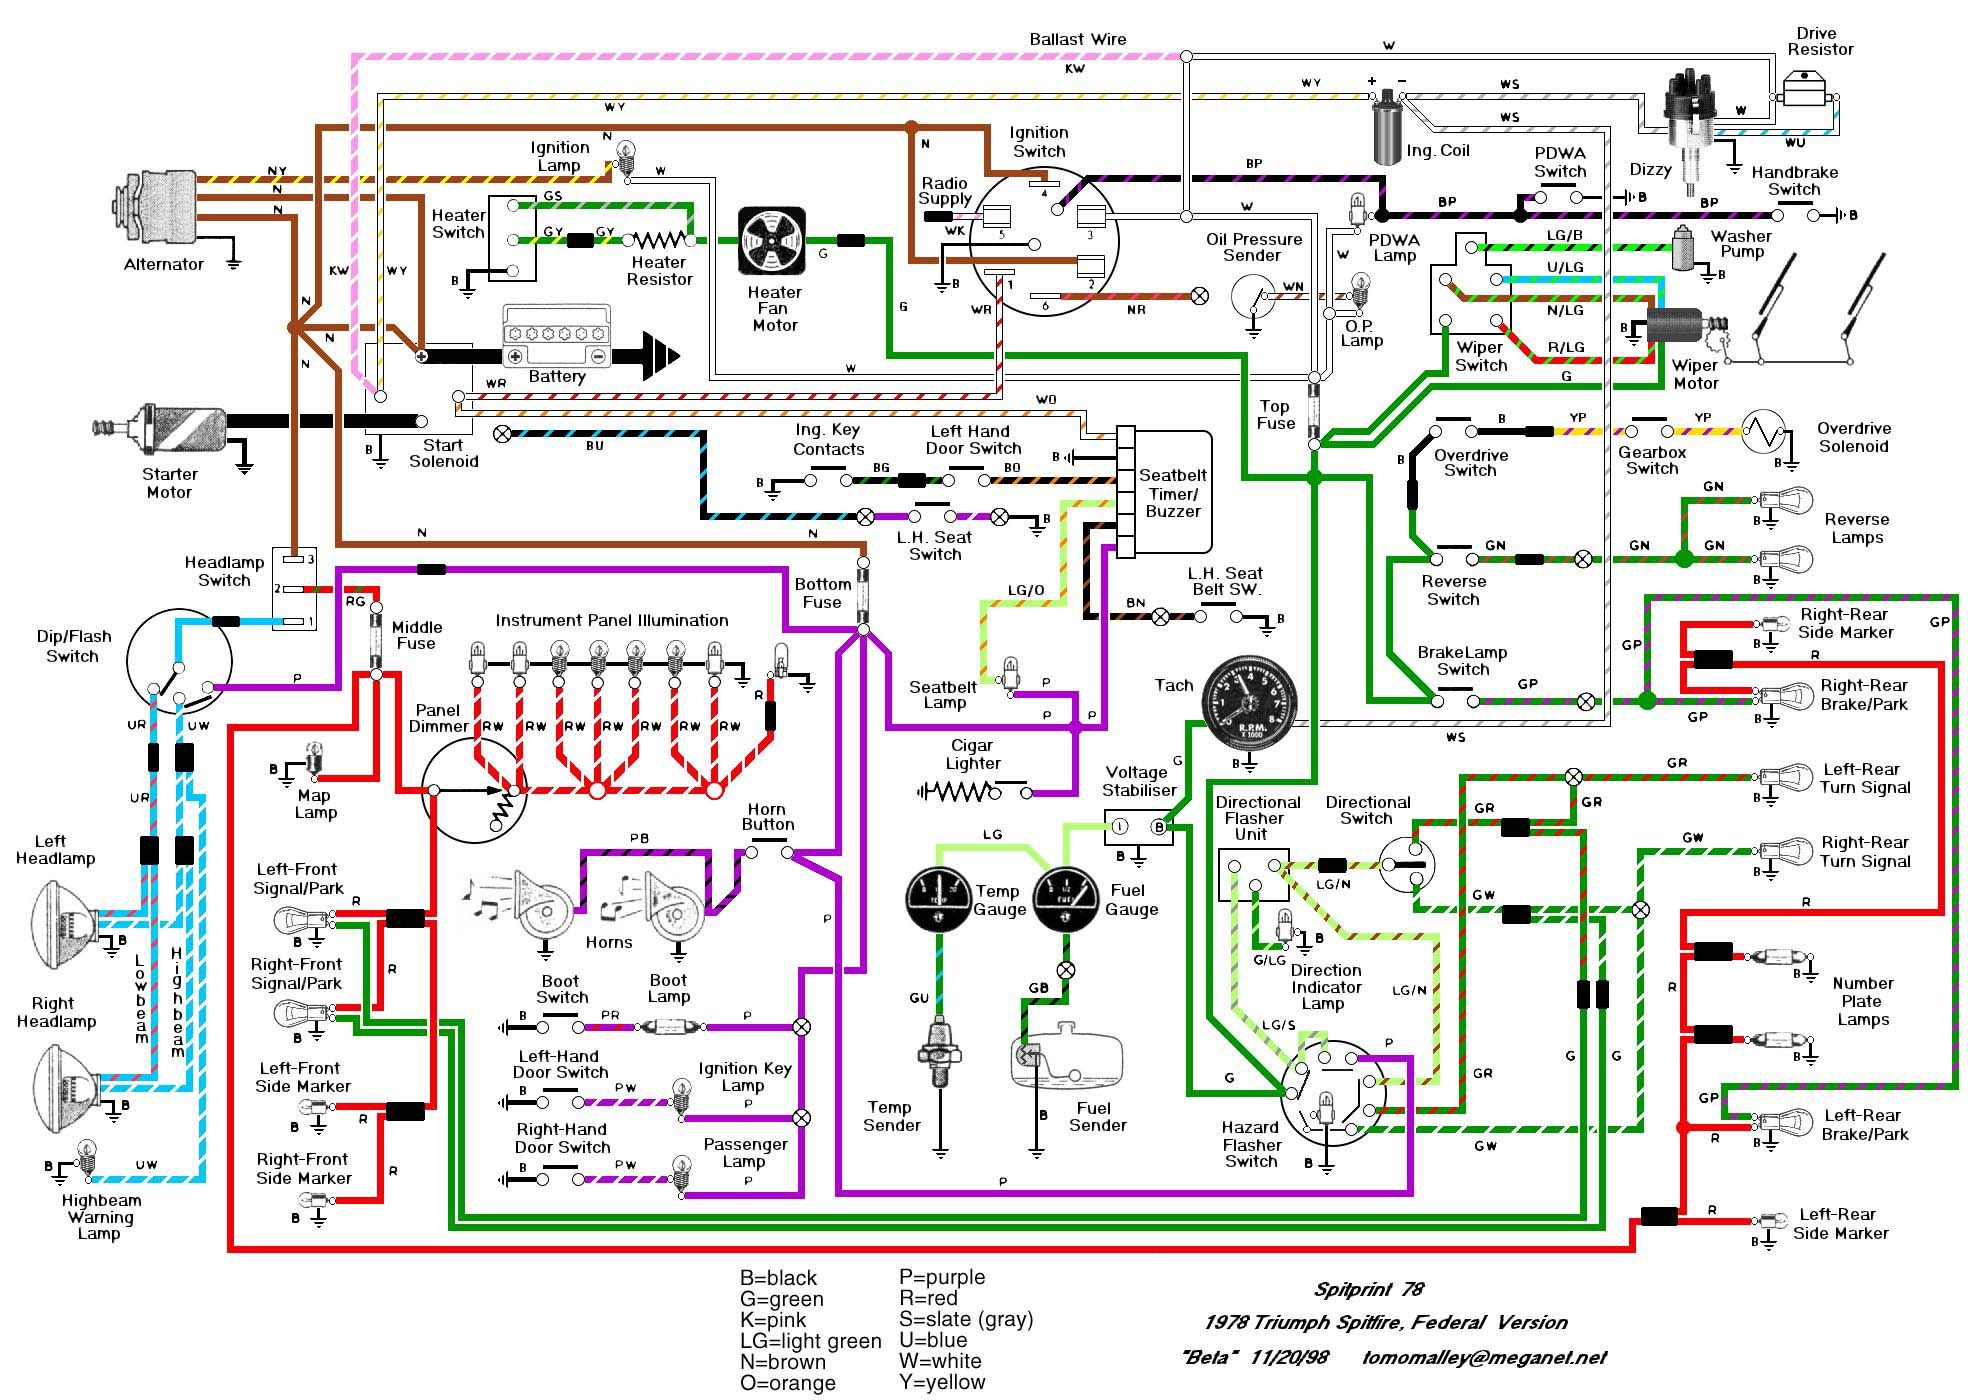 hz_6325] daytona 600 triumph wiring diagram get free image about wiring  download diagram  sarc terst awni eopsy peted oidei vira mohammedshrine librar wiring 101